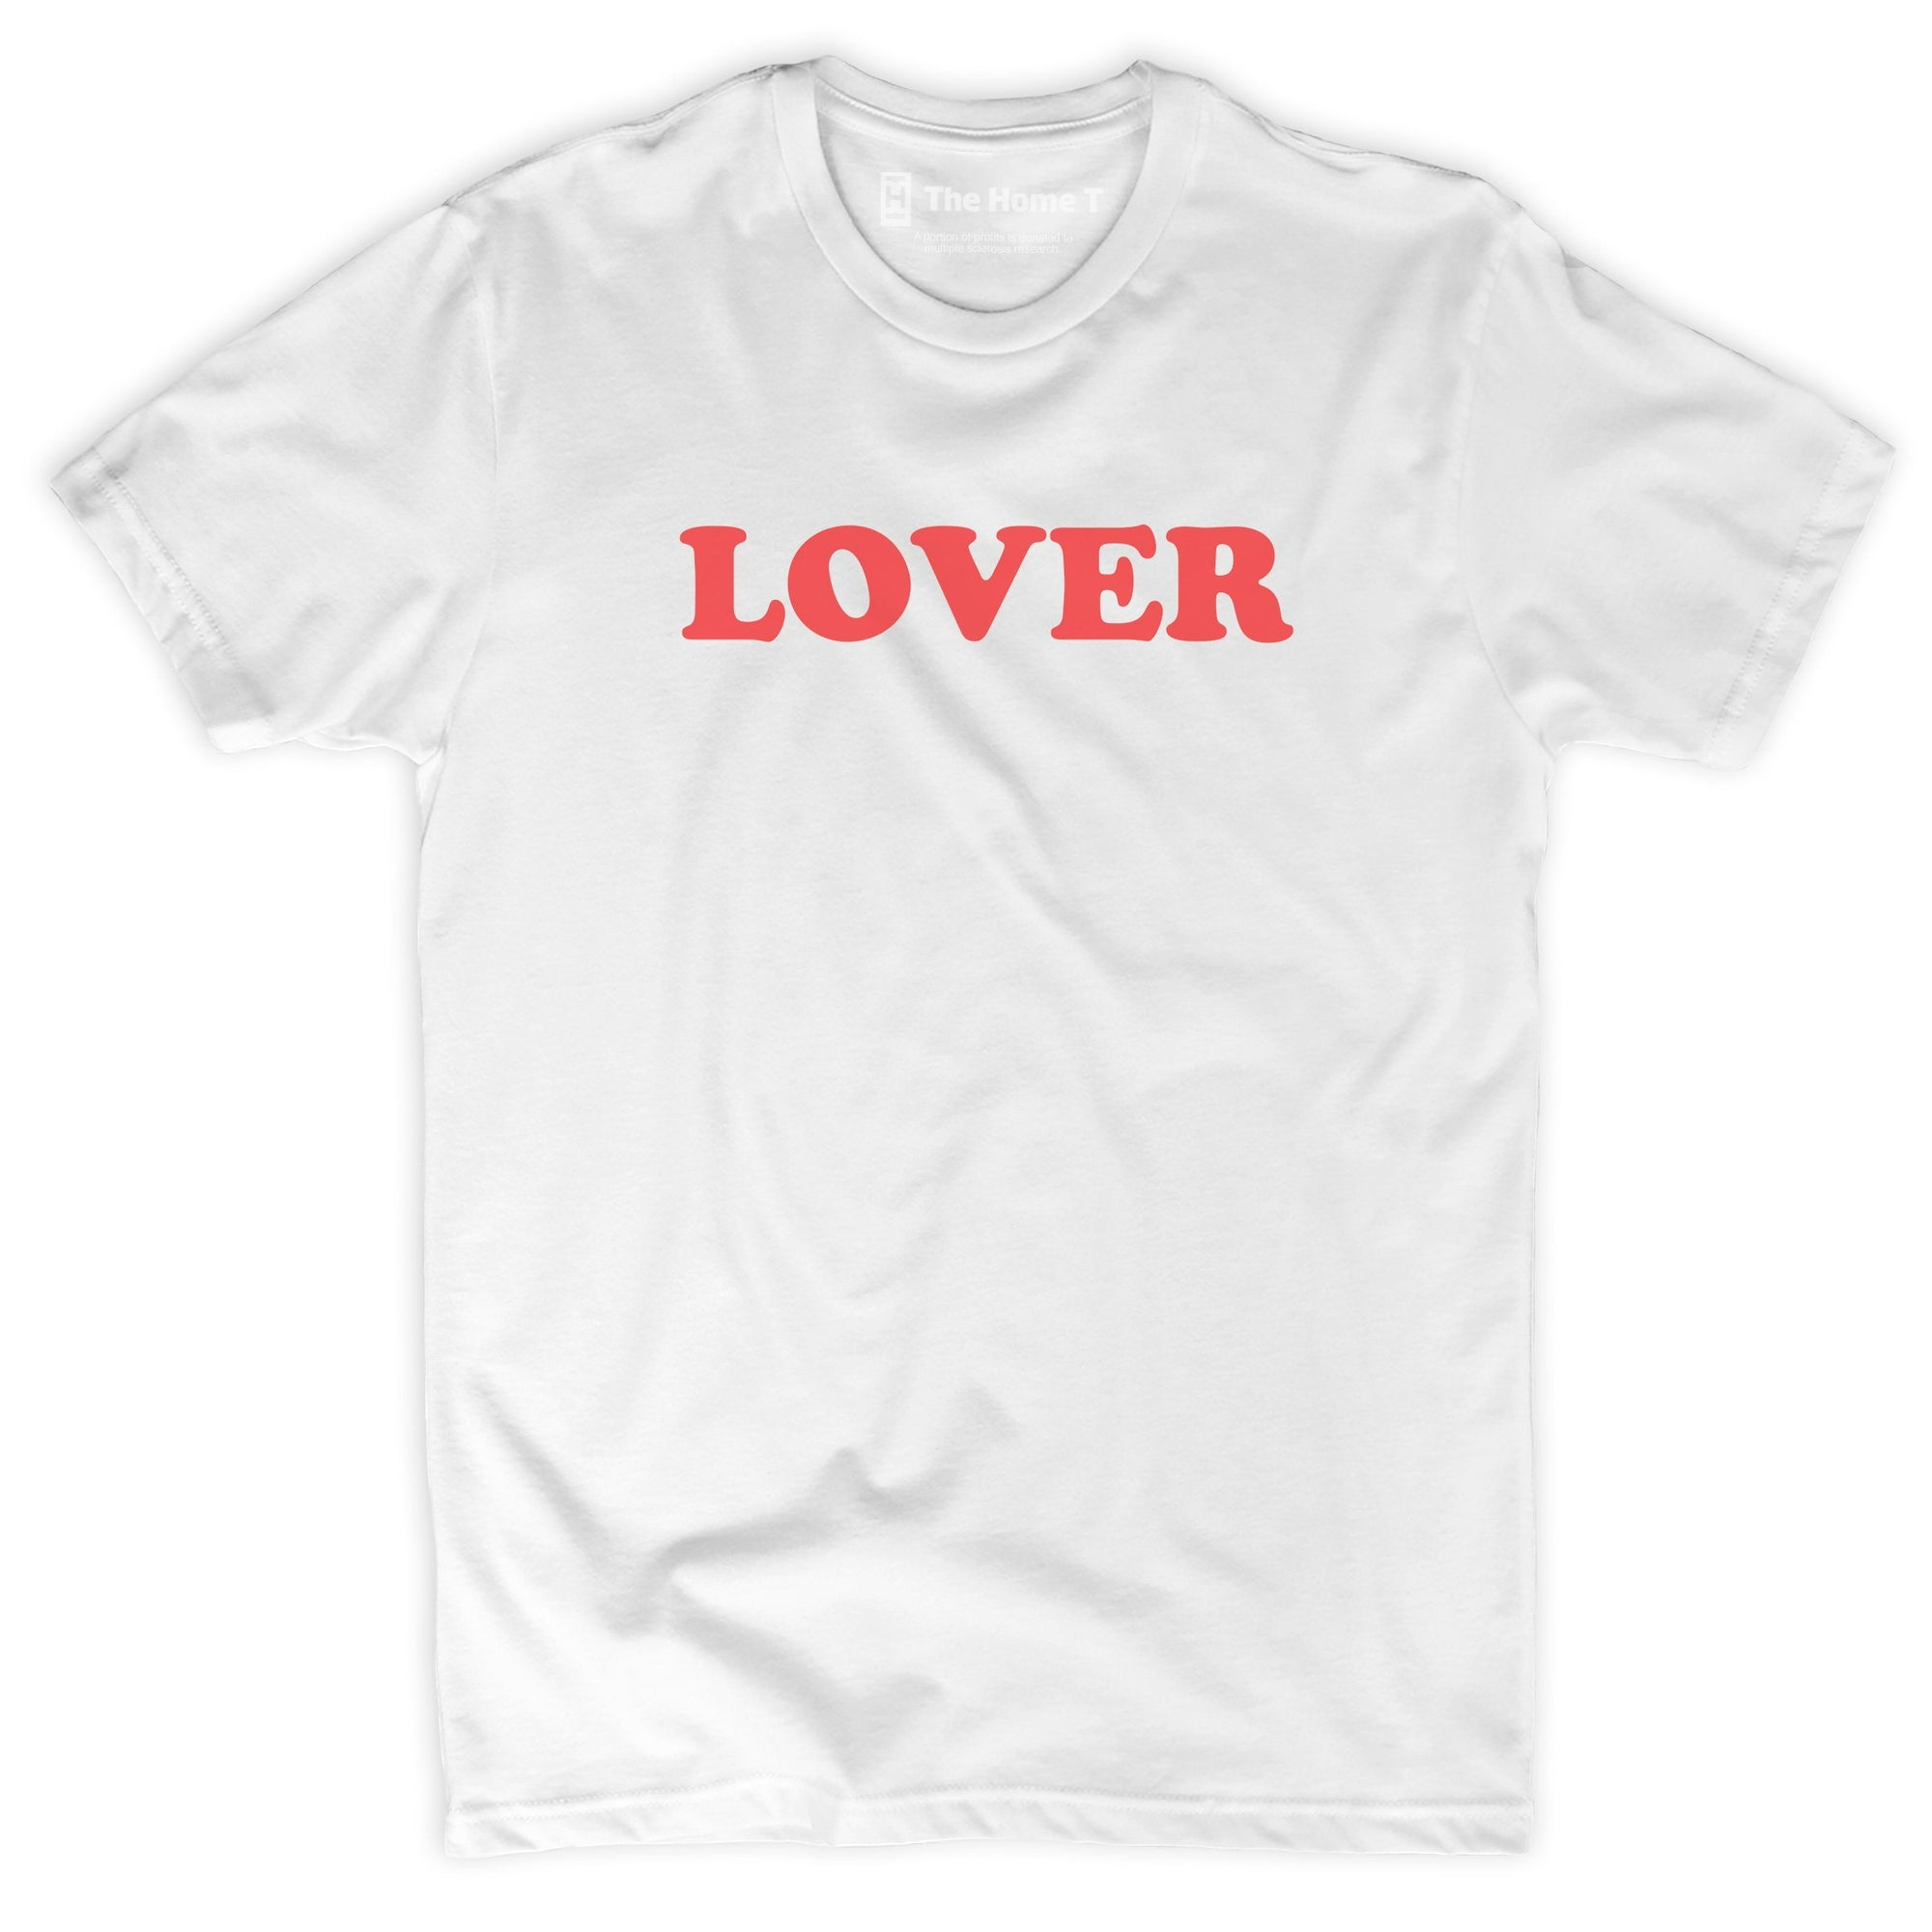 Lover Crew neck The Home T